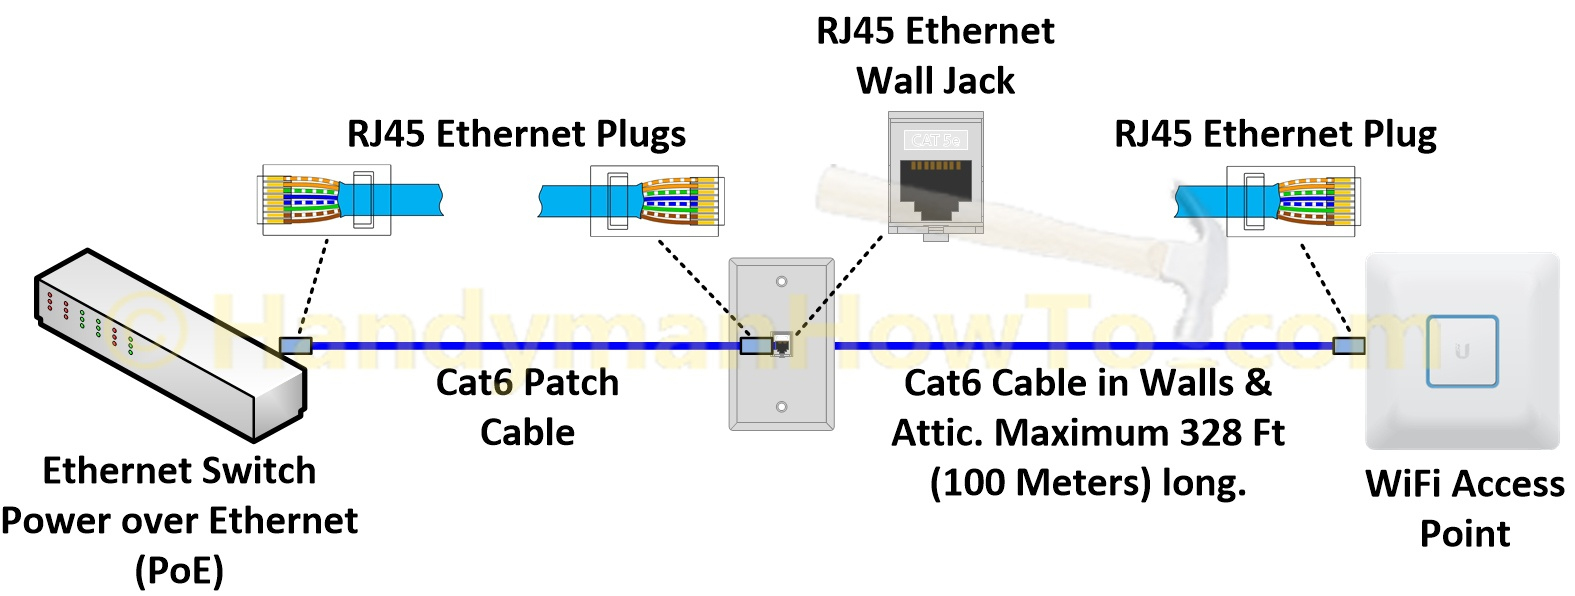 Ethernet Wall Jack Wiring Poe - Wiring Diagram Data - Cat5 Poe Wiring Diagram